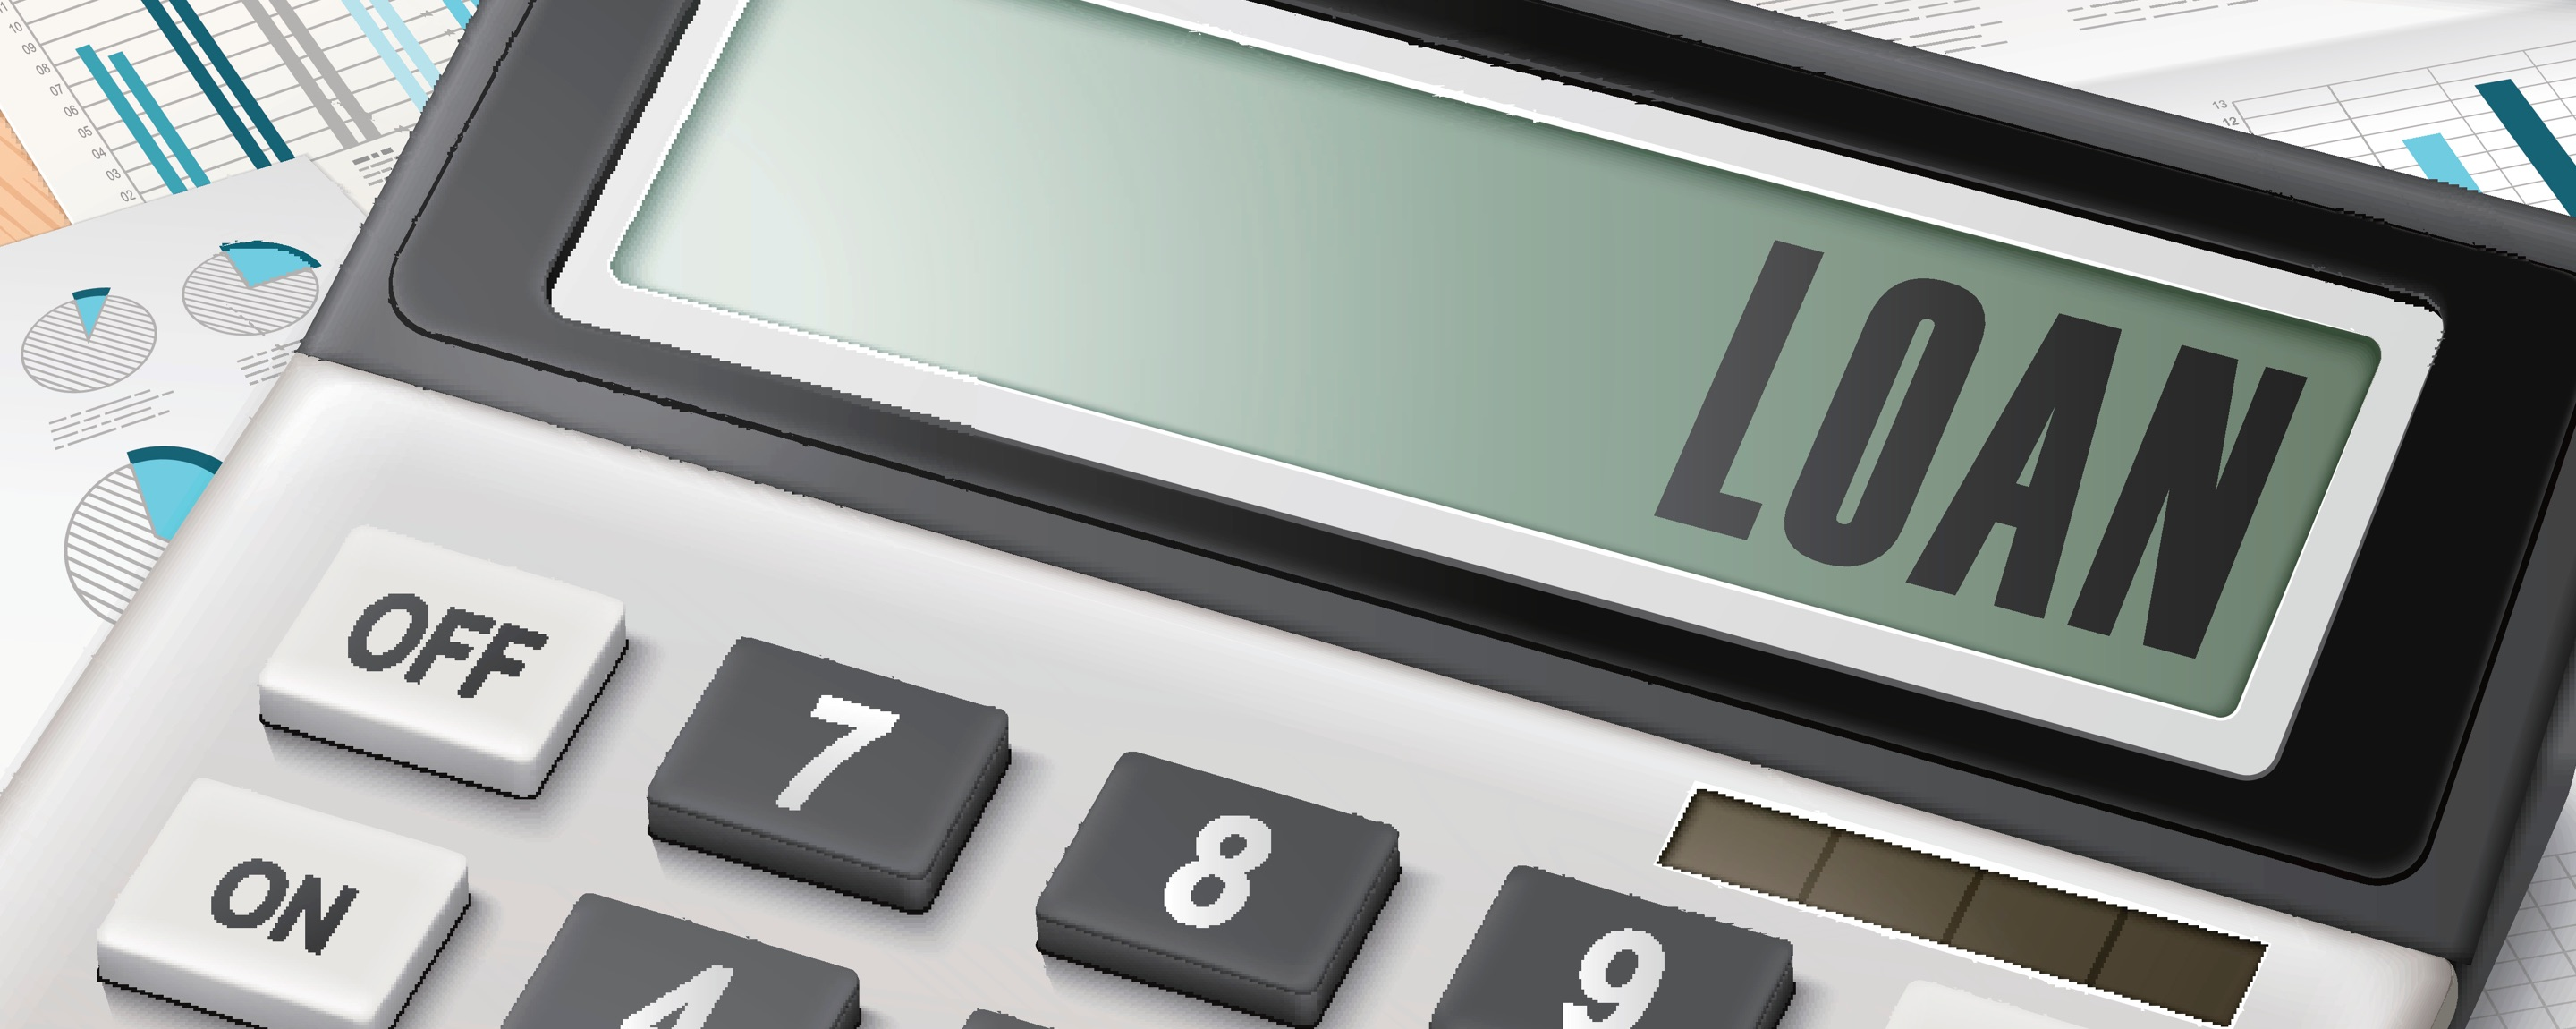 Loan calculator clipart free stock Mortgage Calculator - Get Insurance Quotes Online Including Cheap ... clipart free stock